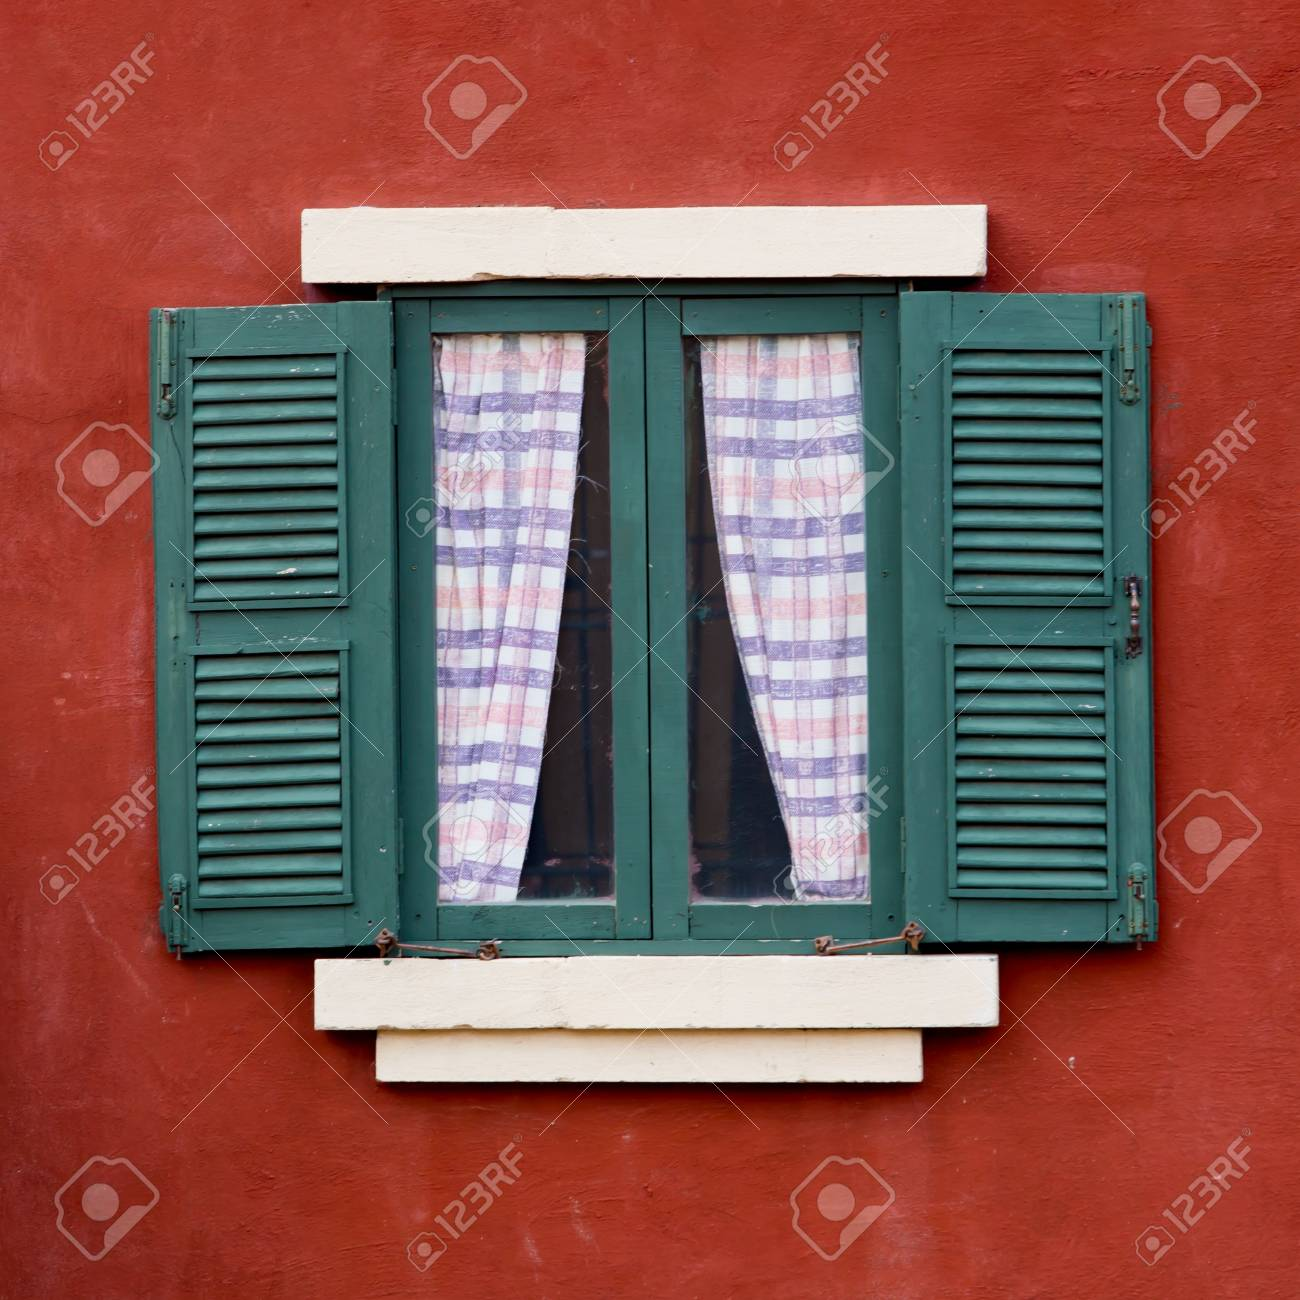 Open Window With  On  red Wall Stock Photo - 22064715